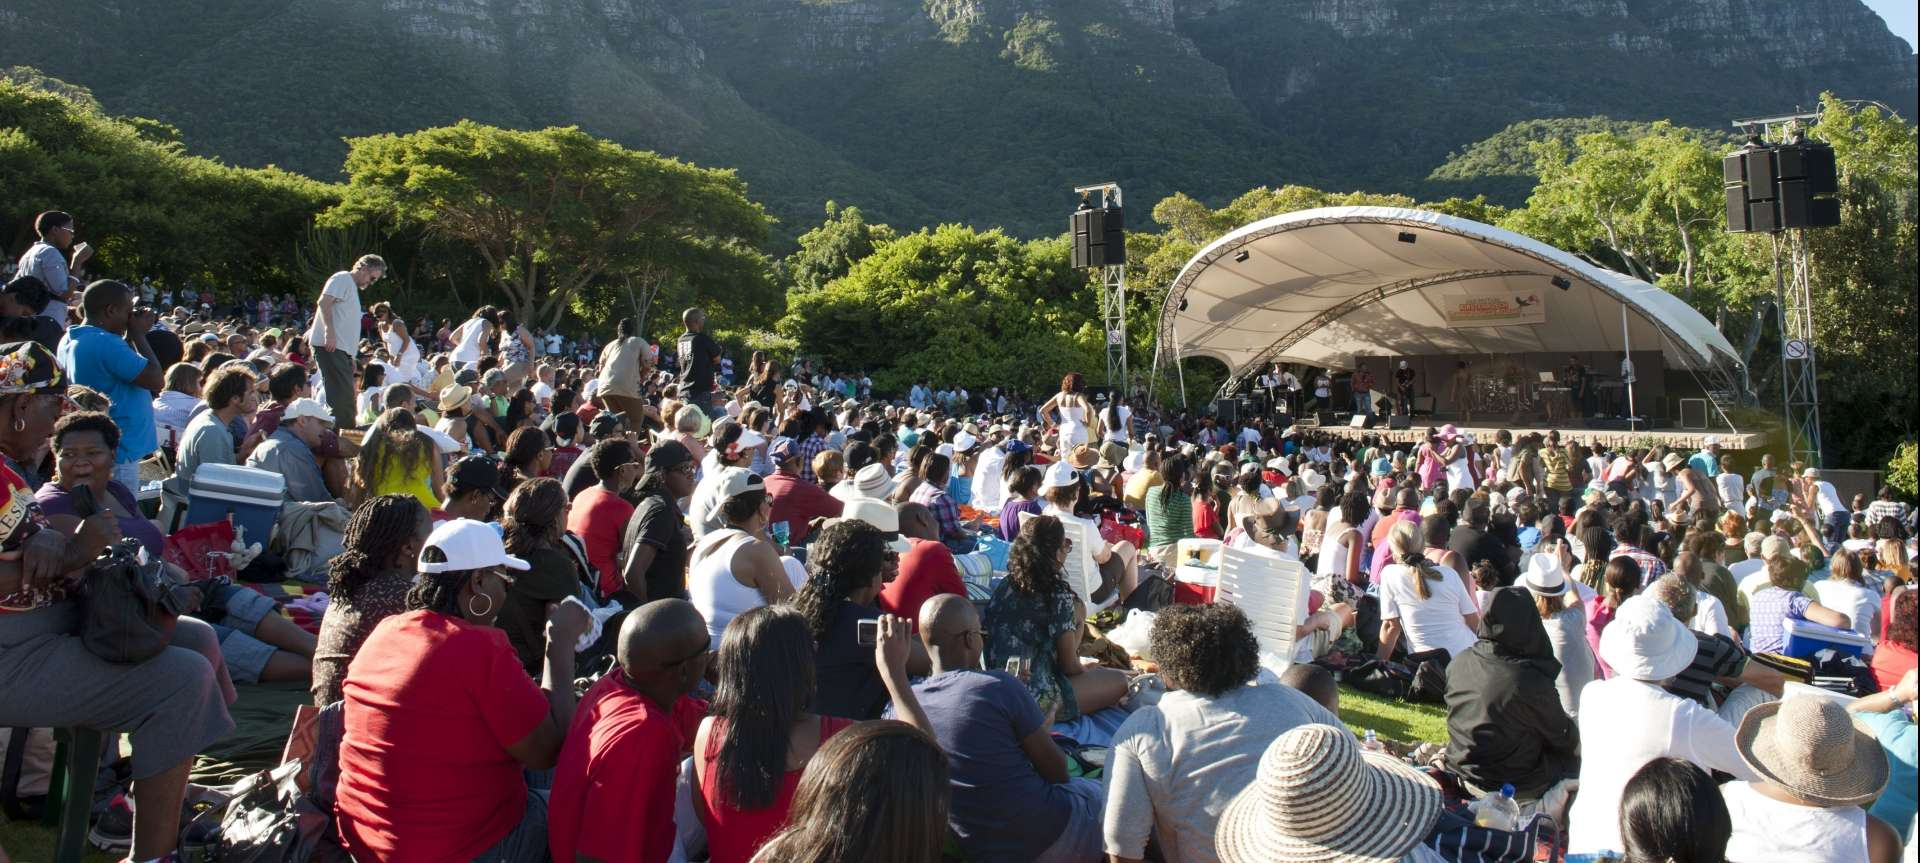 Kirstembosch Botanical Gardens hold concerts each summer featuring local and international artists